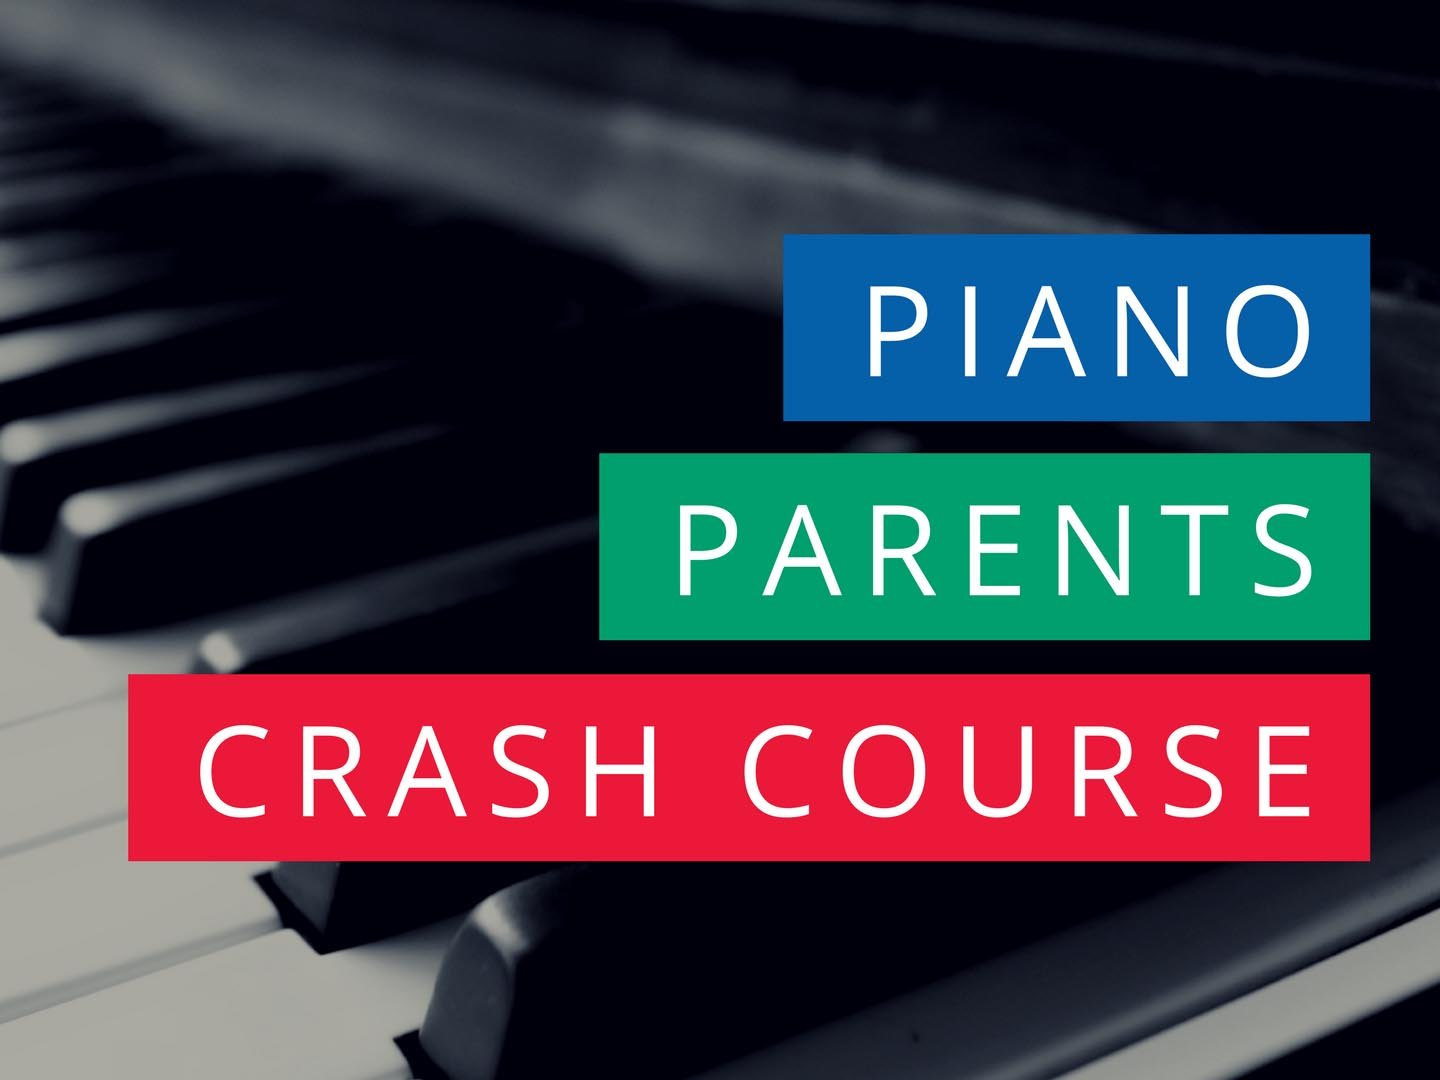 Piano Parents Crash Course